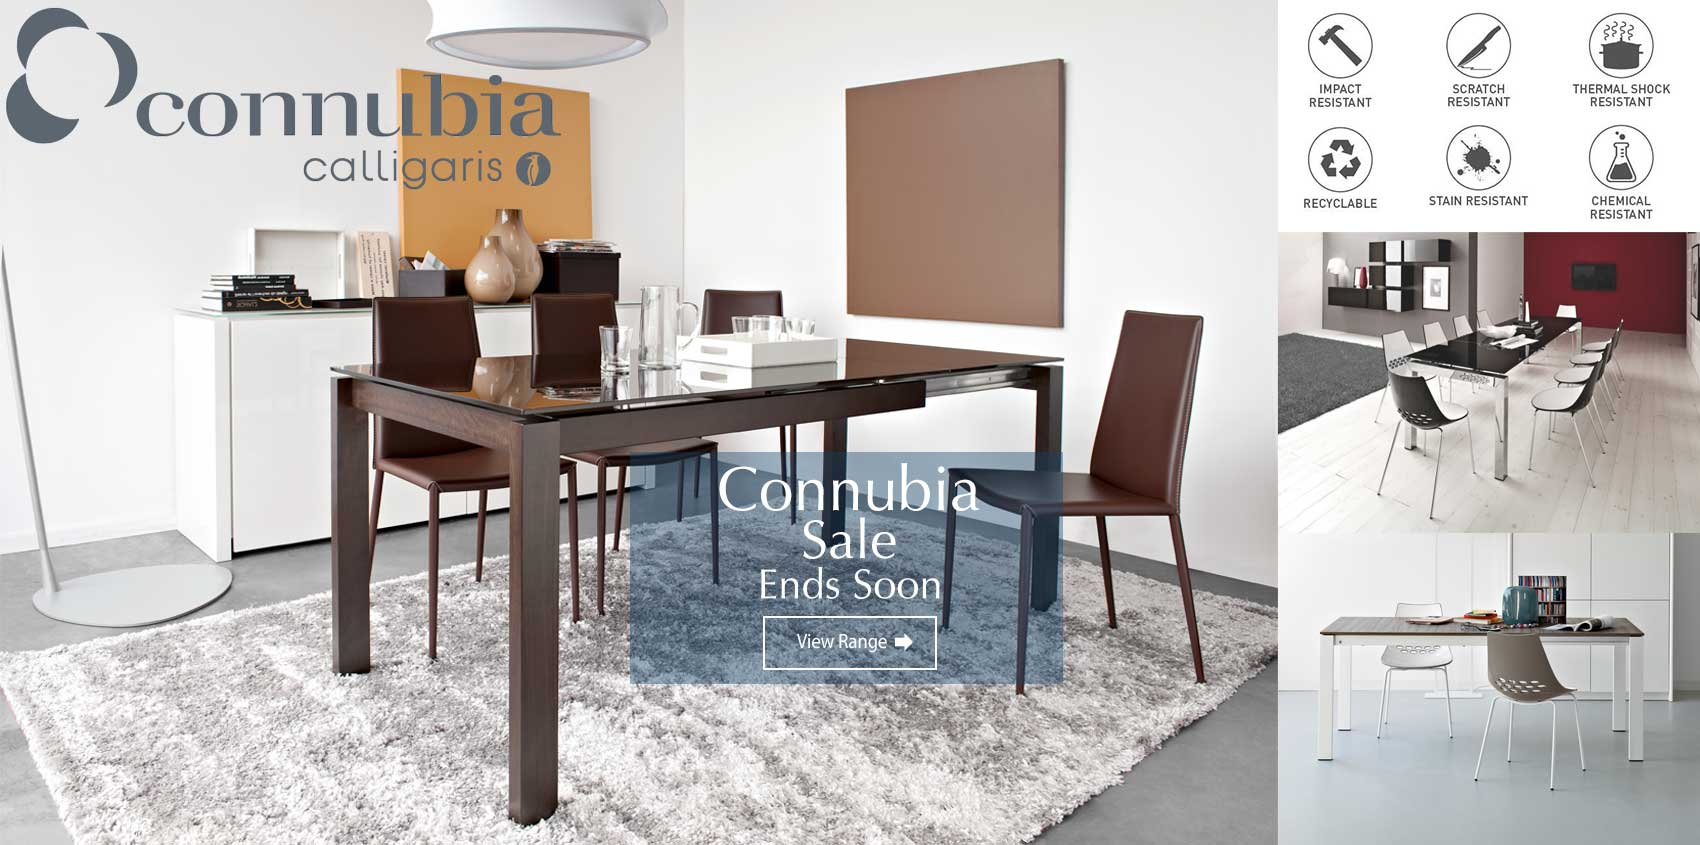 Connubia by Calligaris Insitu Sale Ends Soon